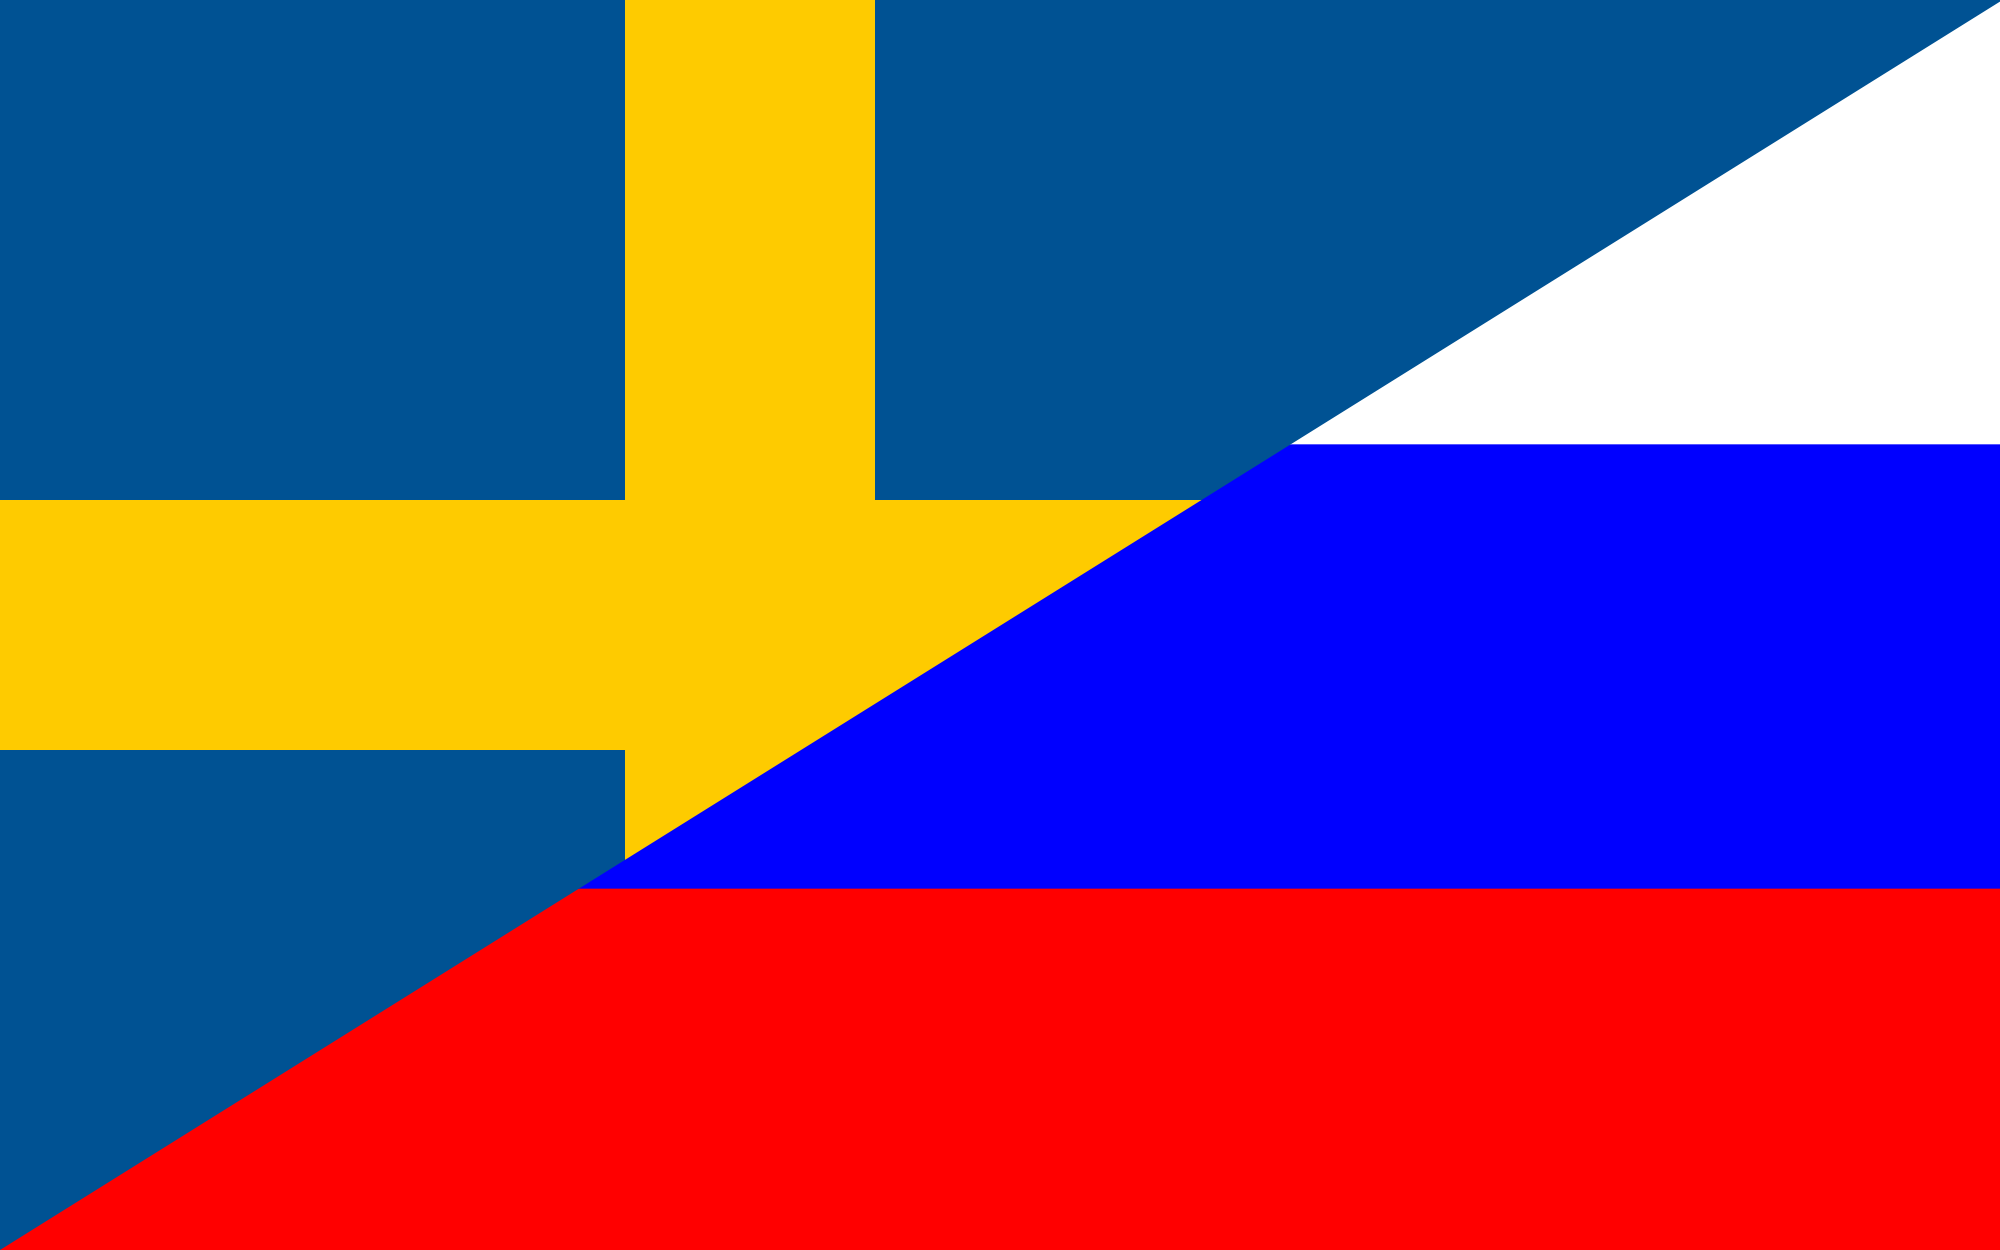 The Swedish-Russian Relations between 1648-1815 - GEOPOLITICA.info